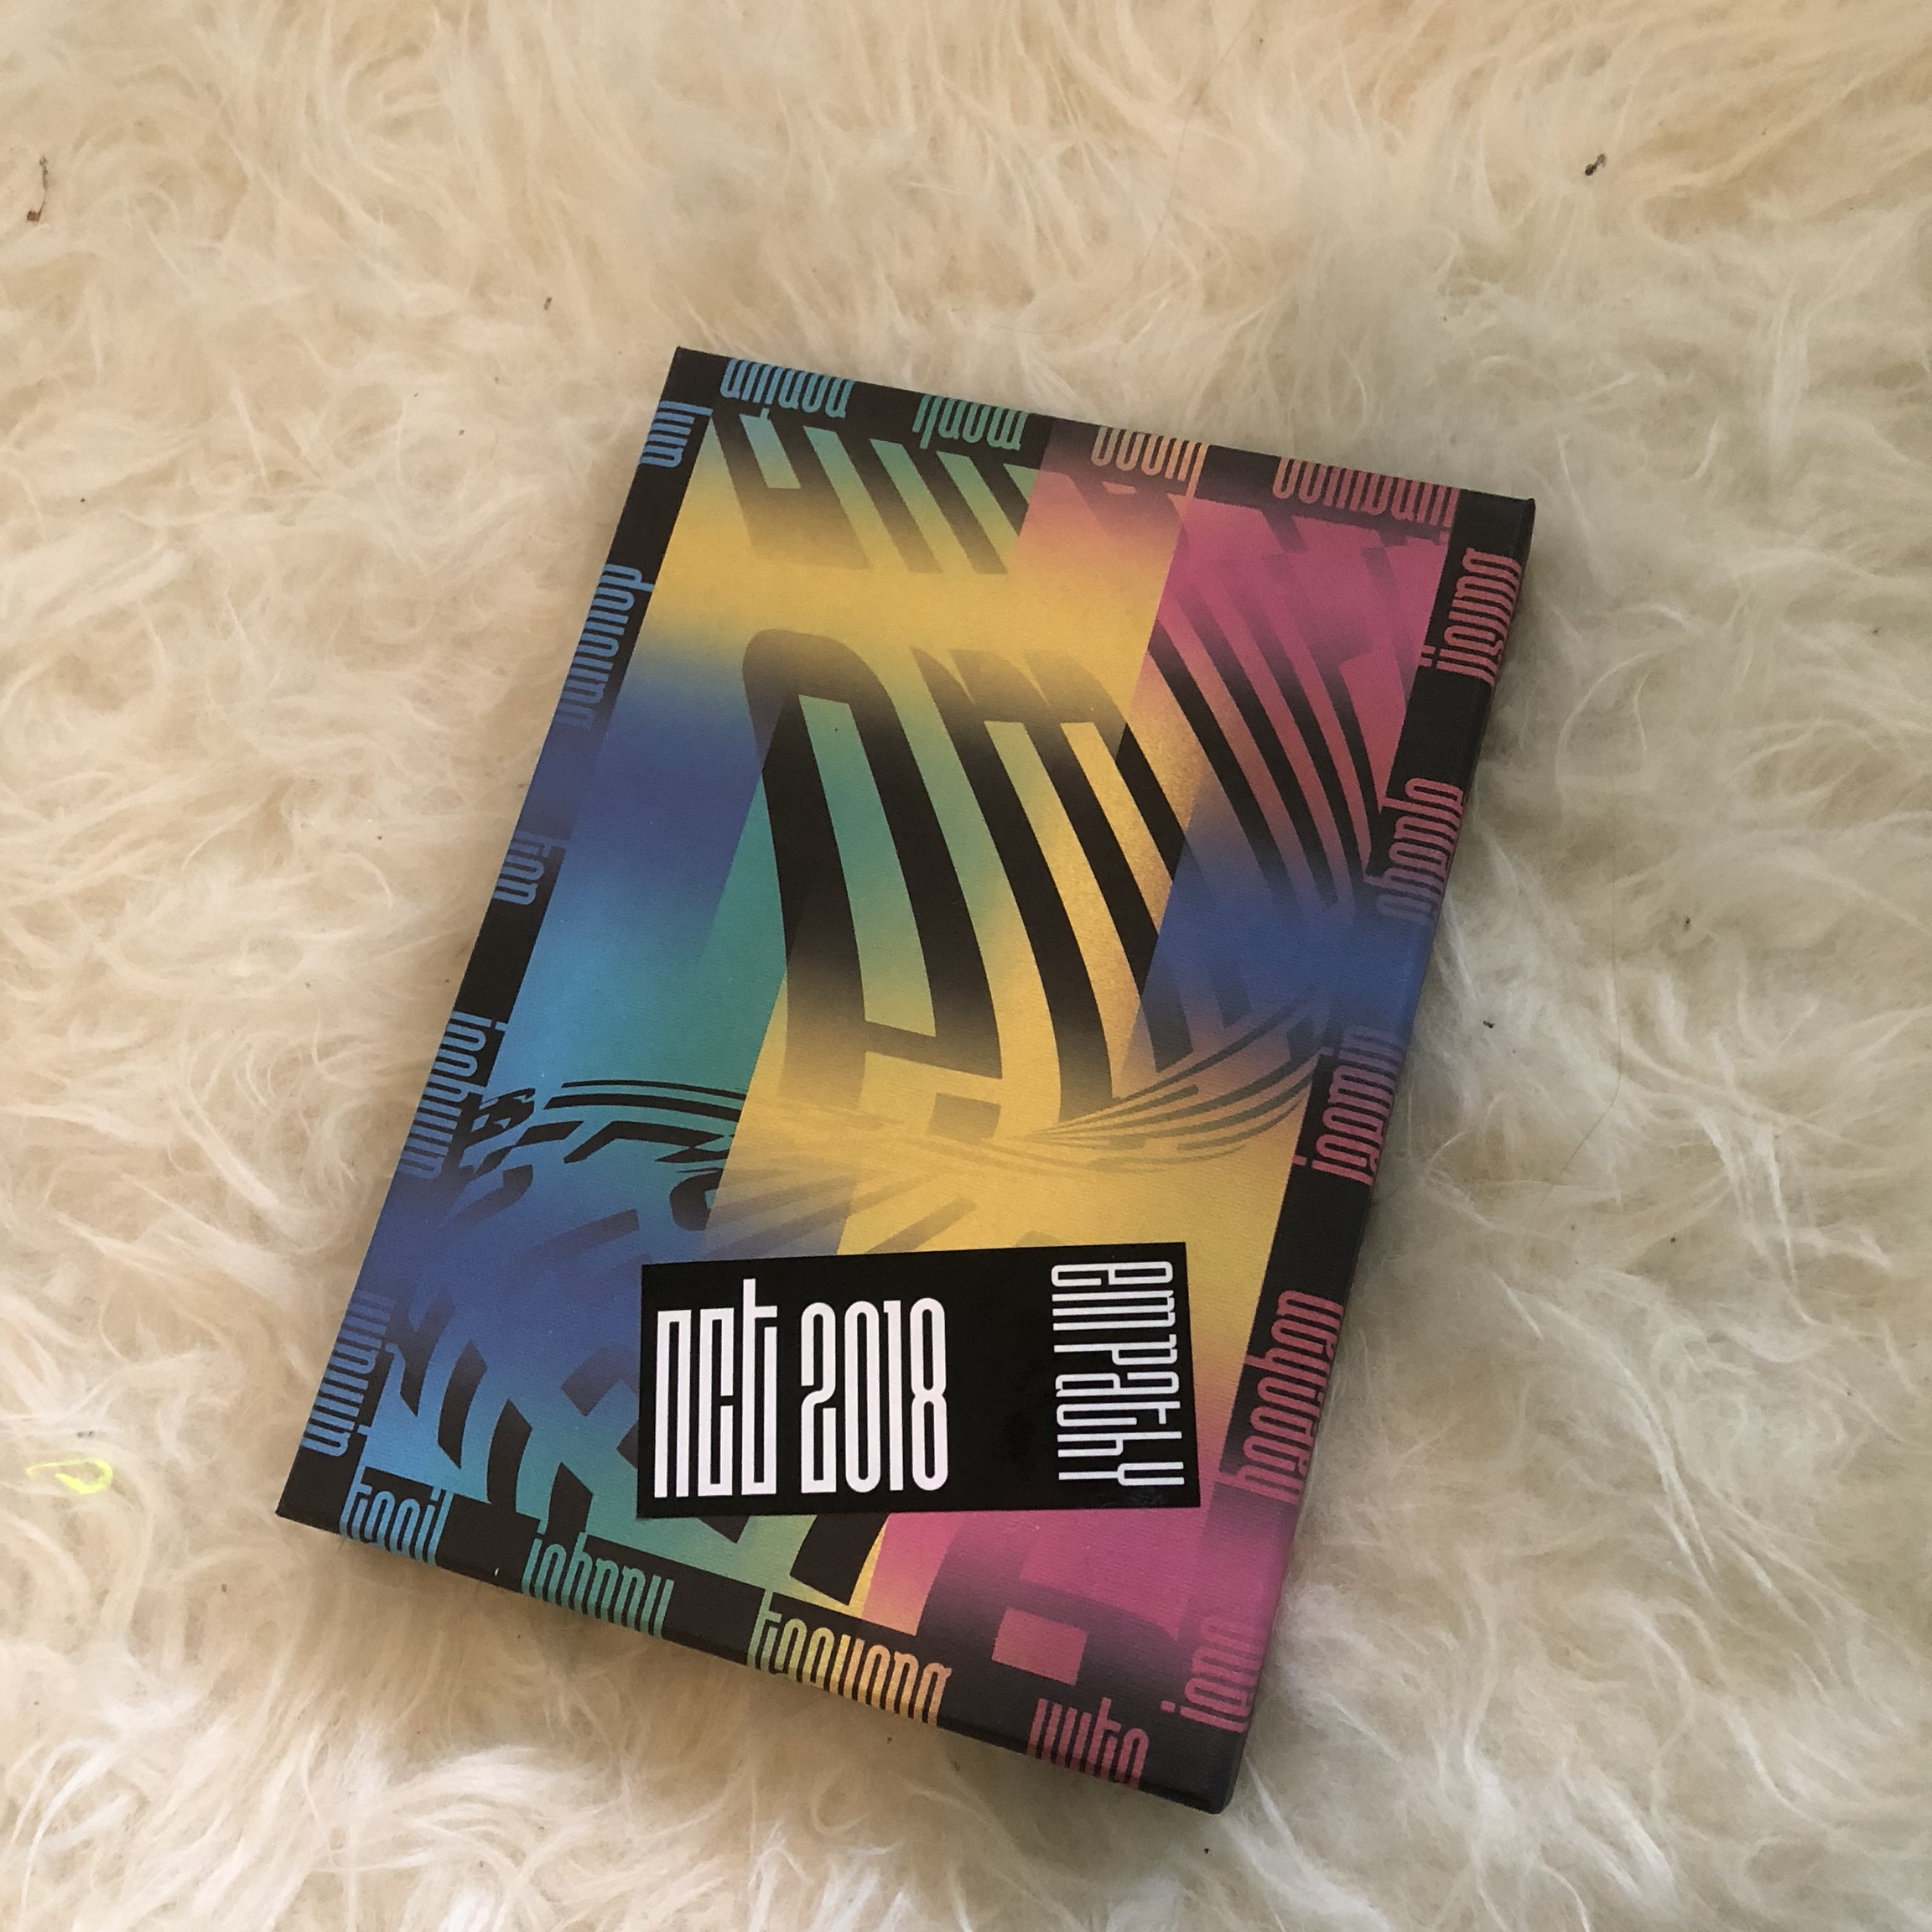 NCT 2018 Empathy album Dream version Includes    - Depop